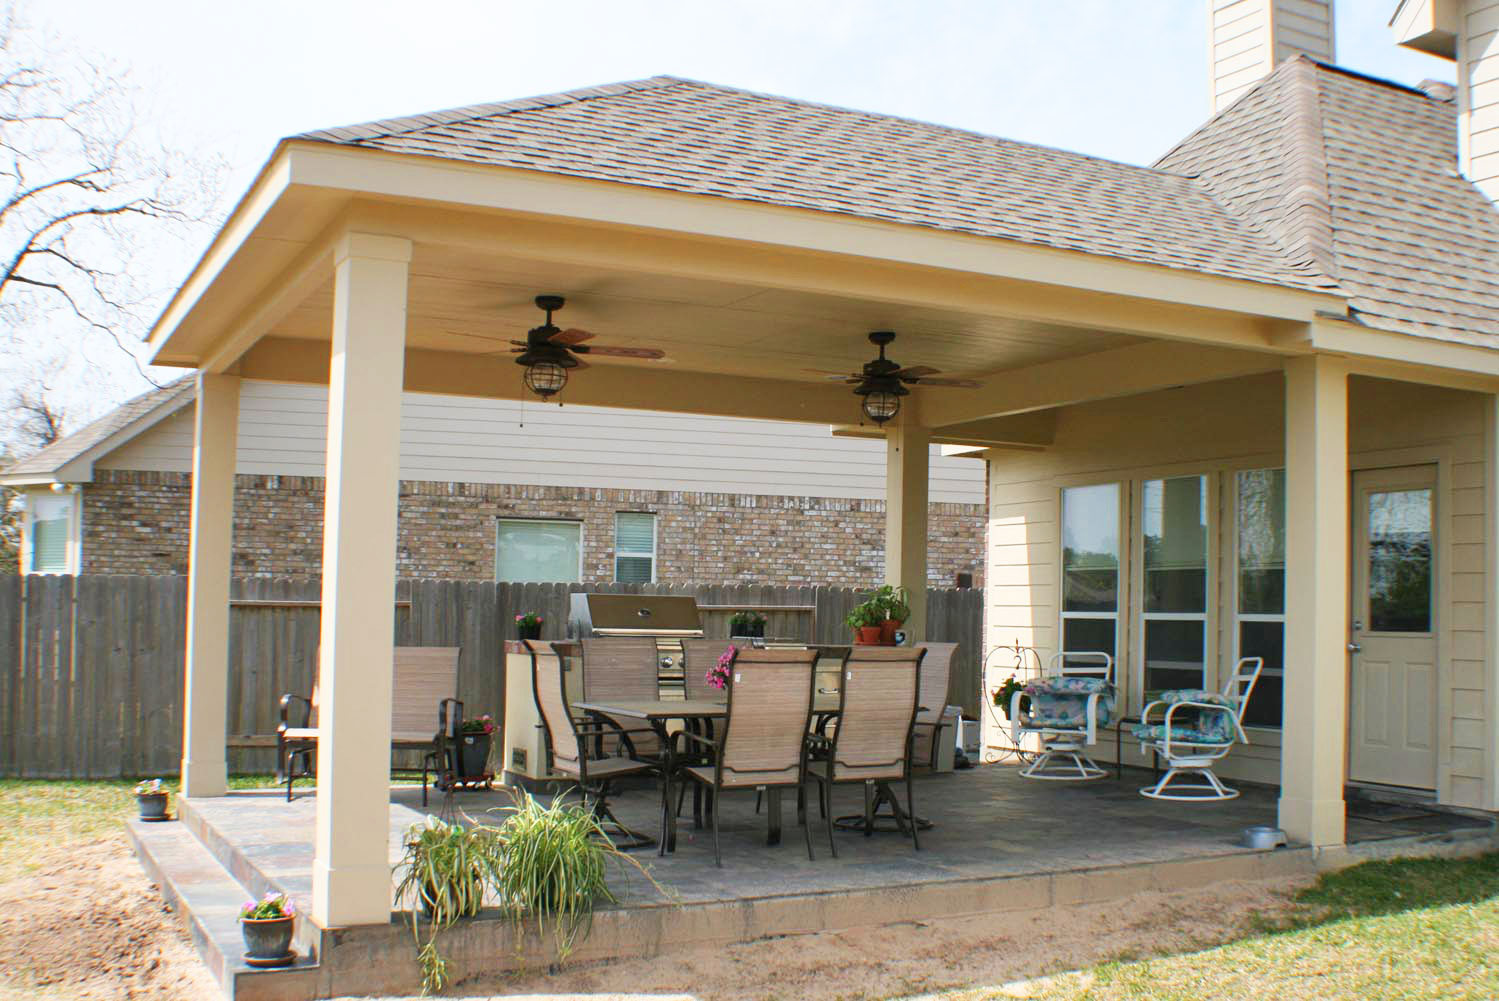 16 by 20 Patio Cover  Outdoor Kitchen  HHI Patio Covers